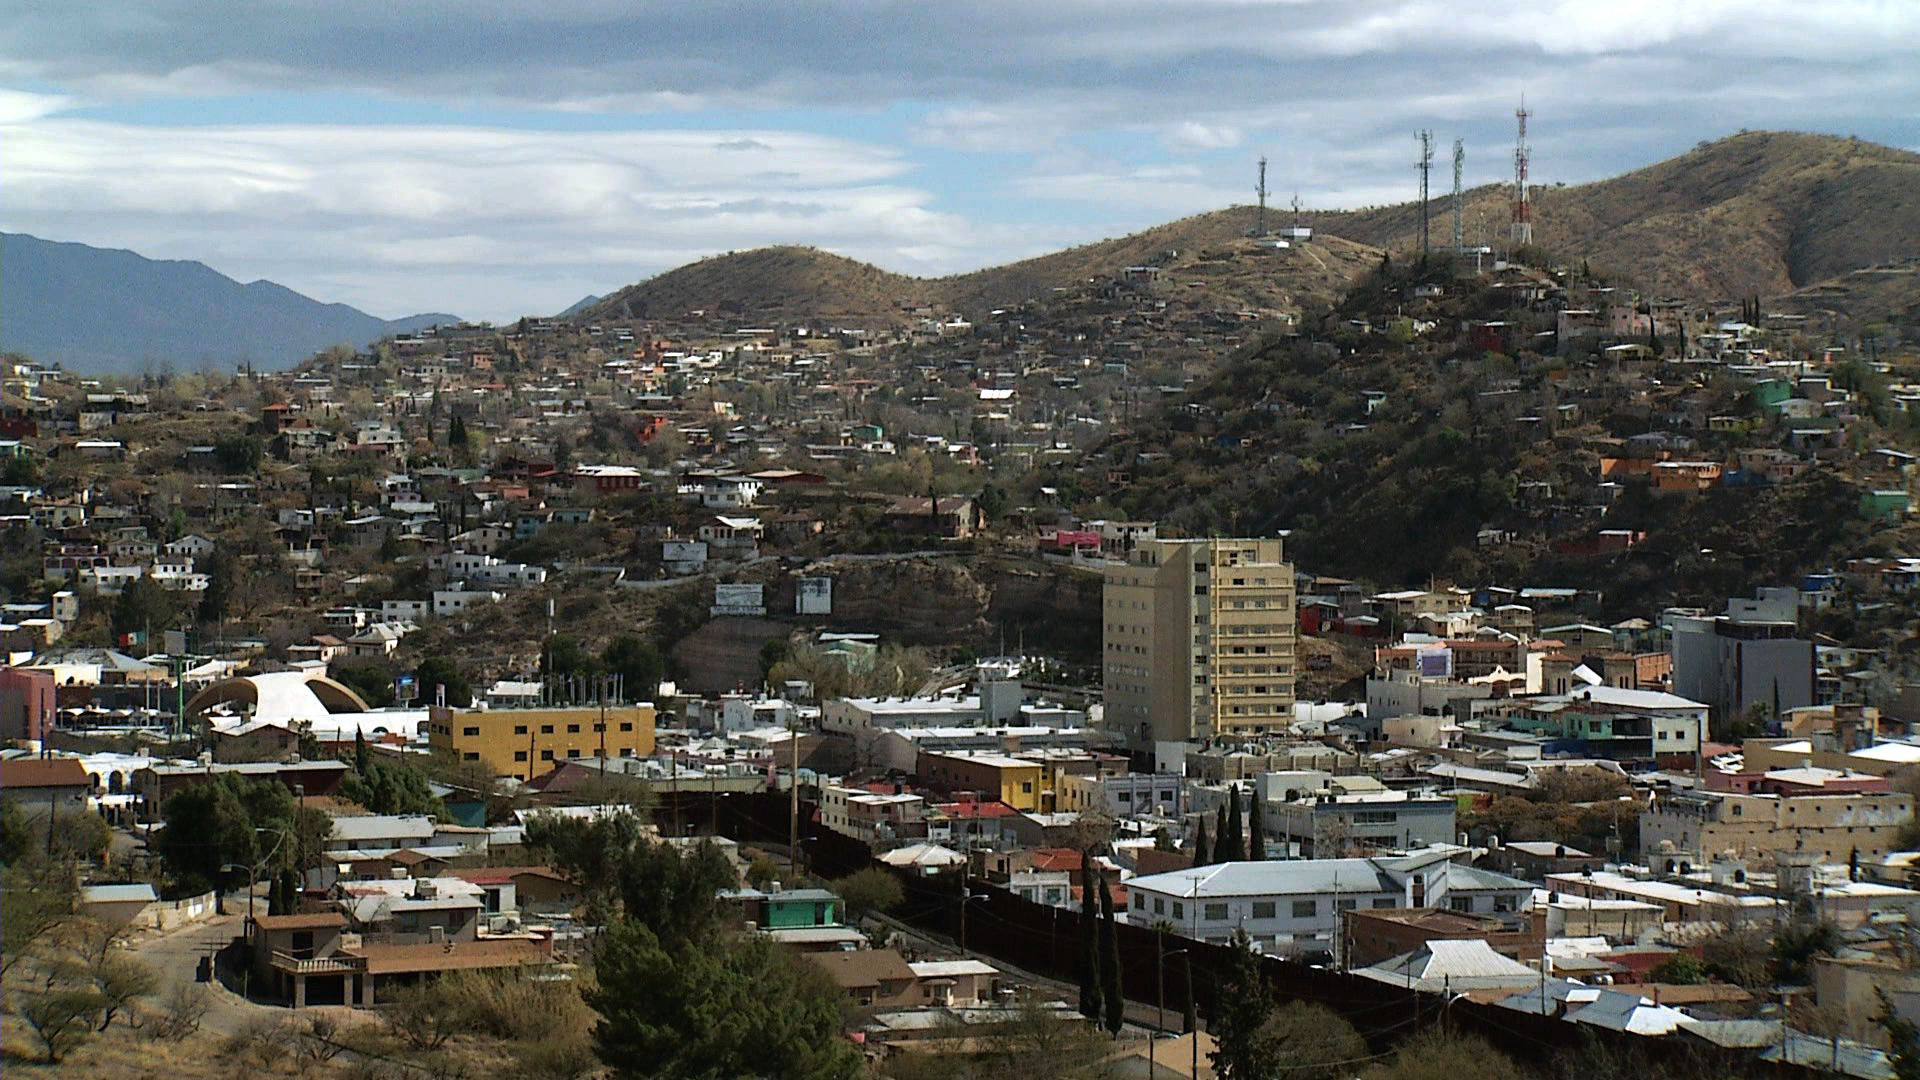 The border of Nogales, Arizona and Nogales, Mexico is separated by a large brown metal fence.